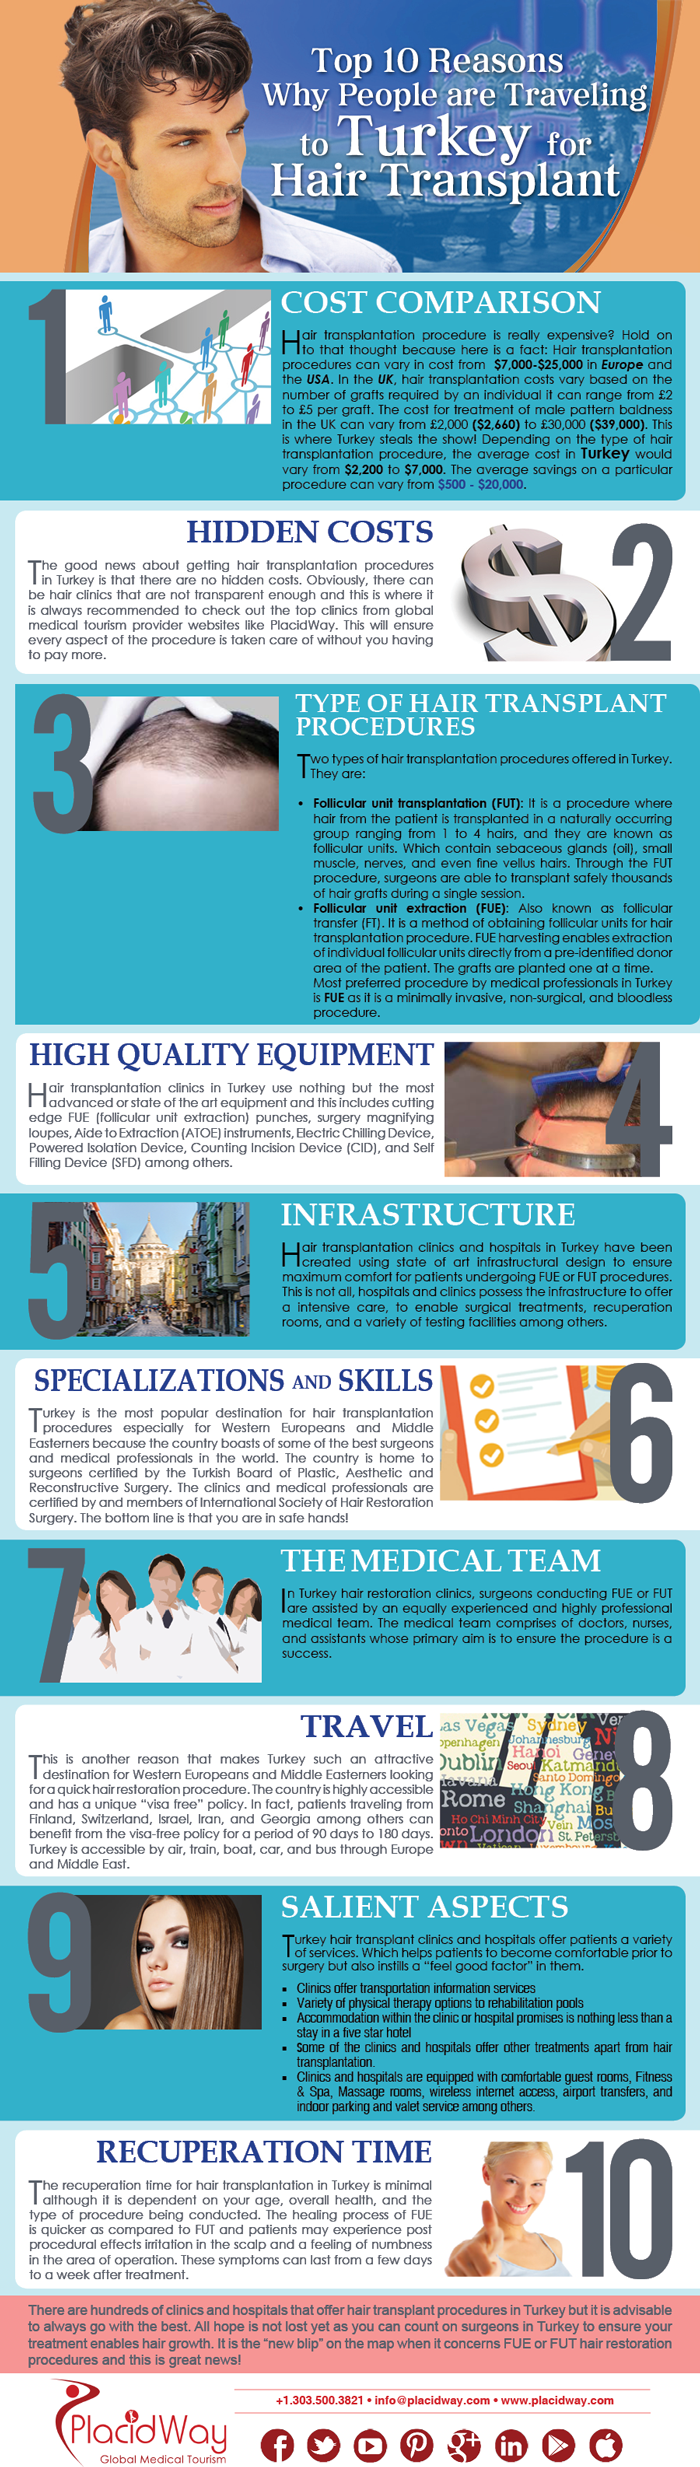 Infographics: Top 10 Reasons Why People are Traveling to Turkey for Hair Transplant